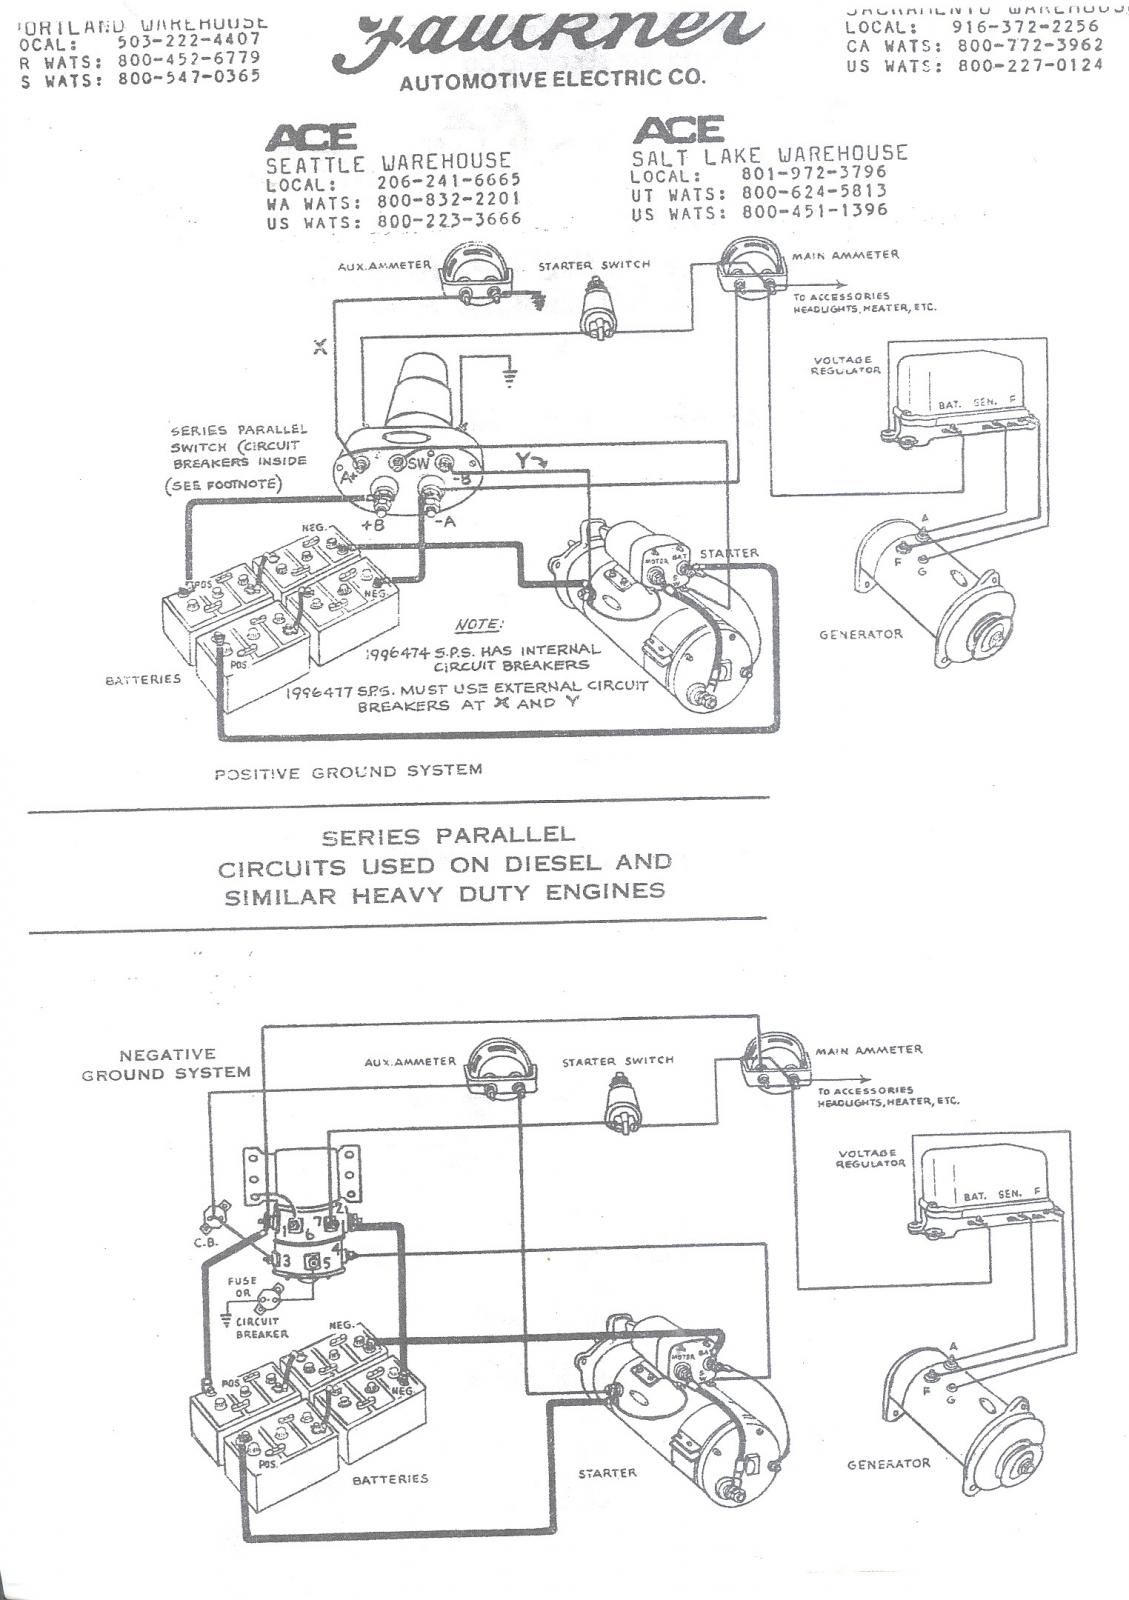 Series Parallel Wiring Diagram Kenworth - Wiring Diagram Data Oreo - Speaker Wiring Diagram Series Vs Parallel